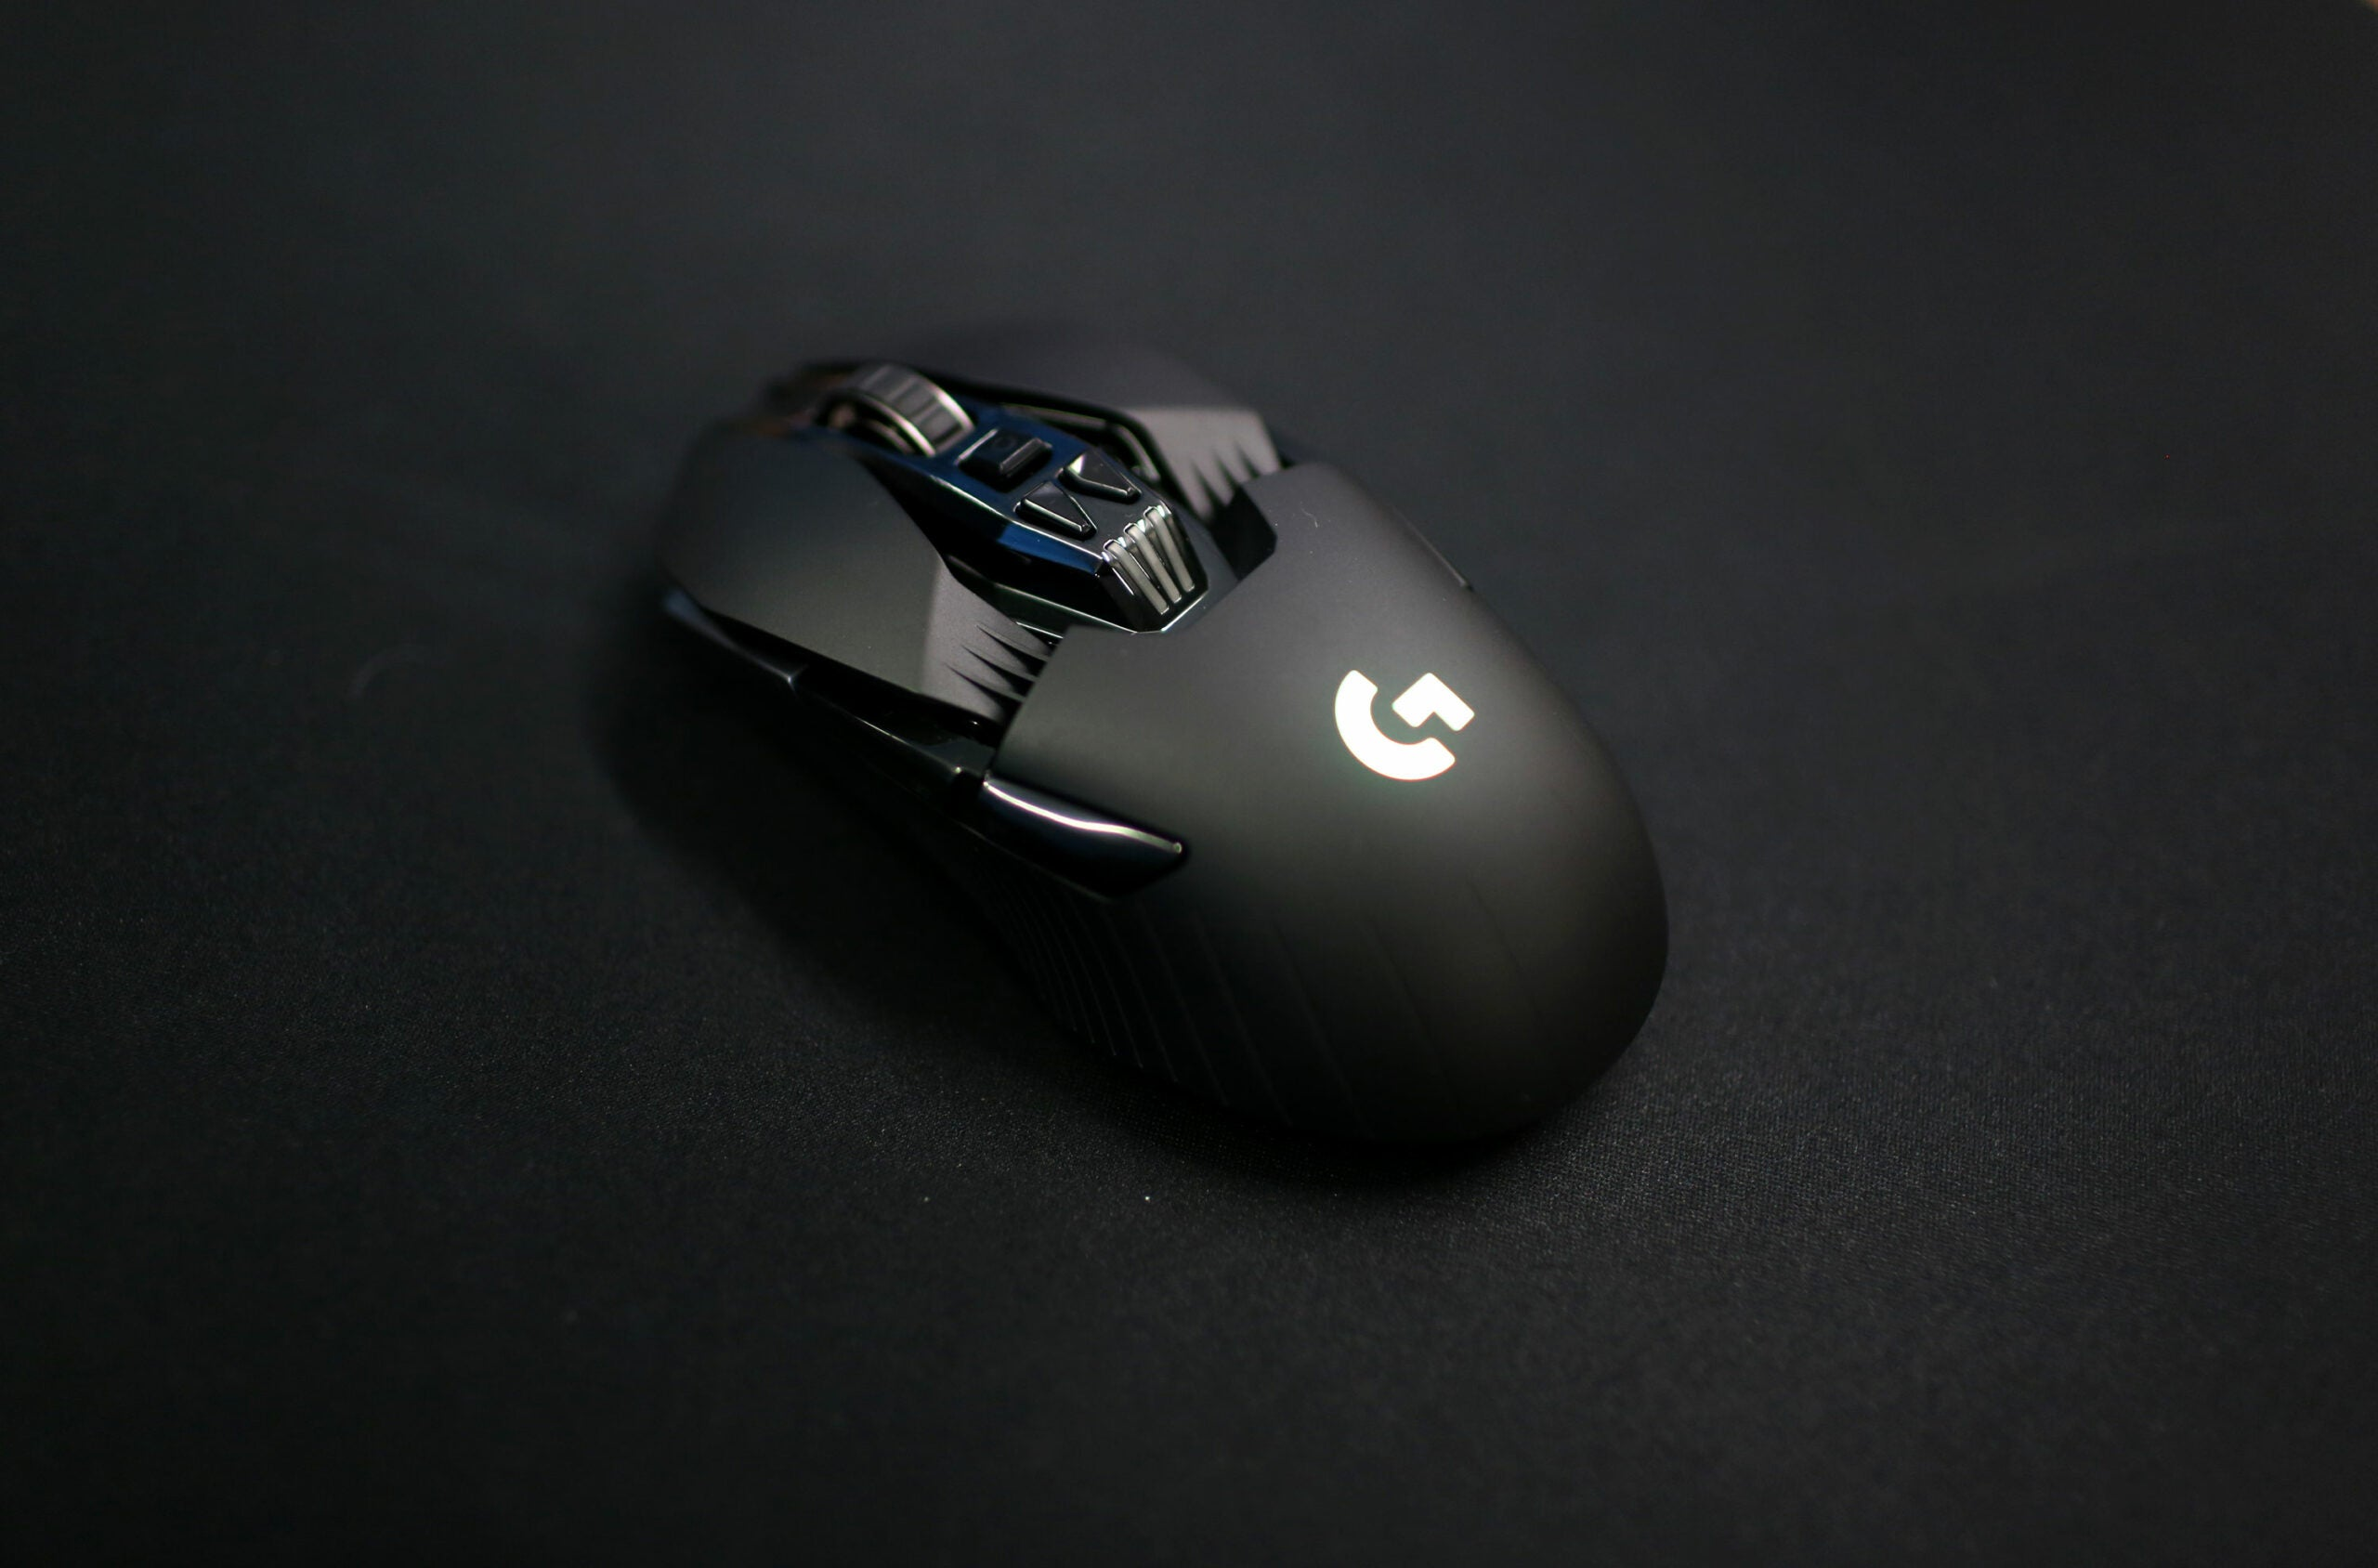 The mouse to end all mice